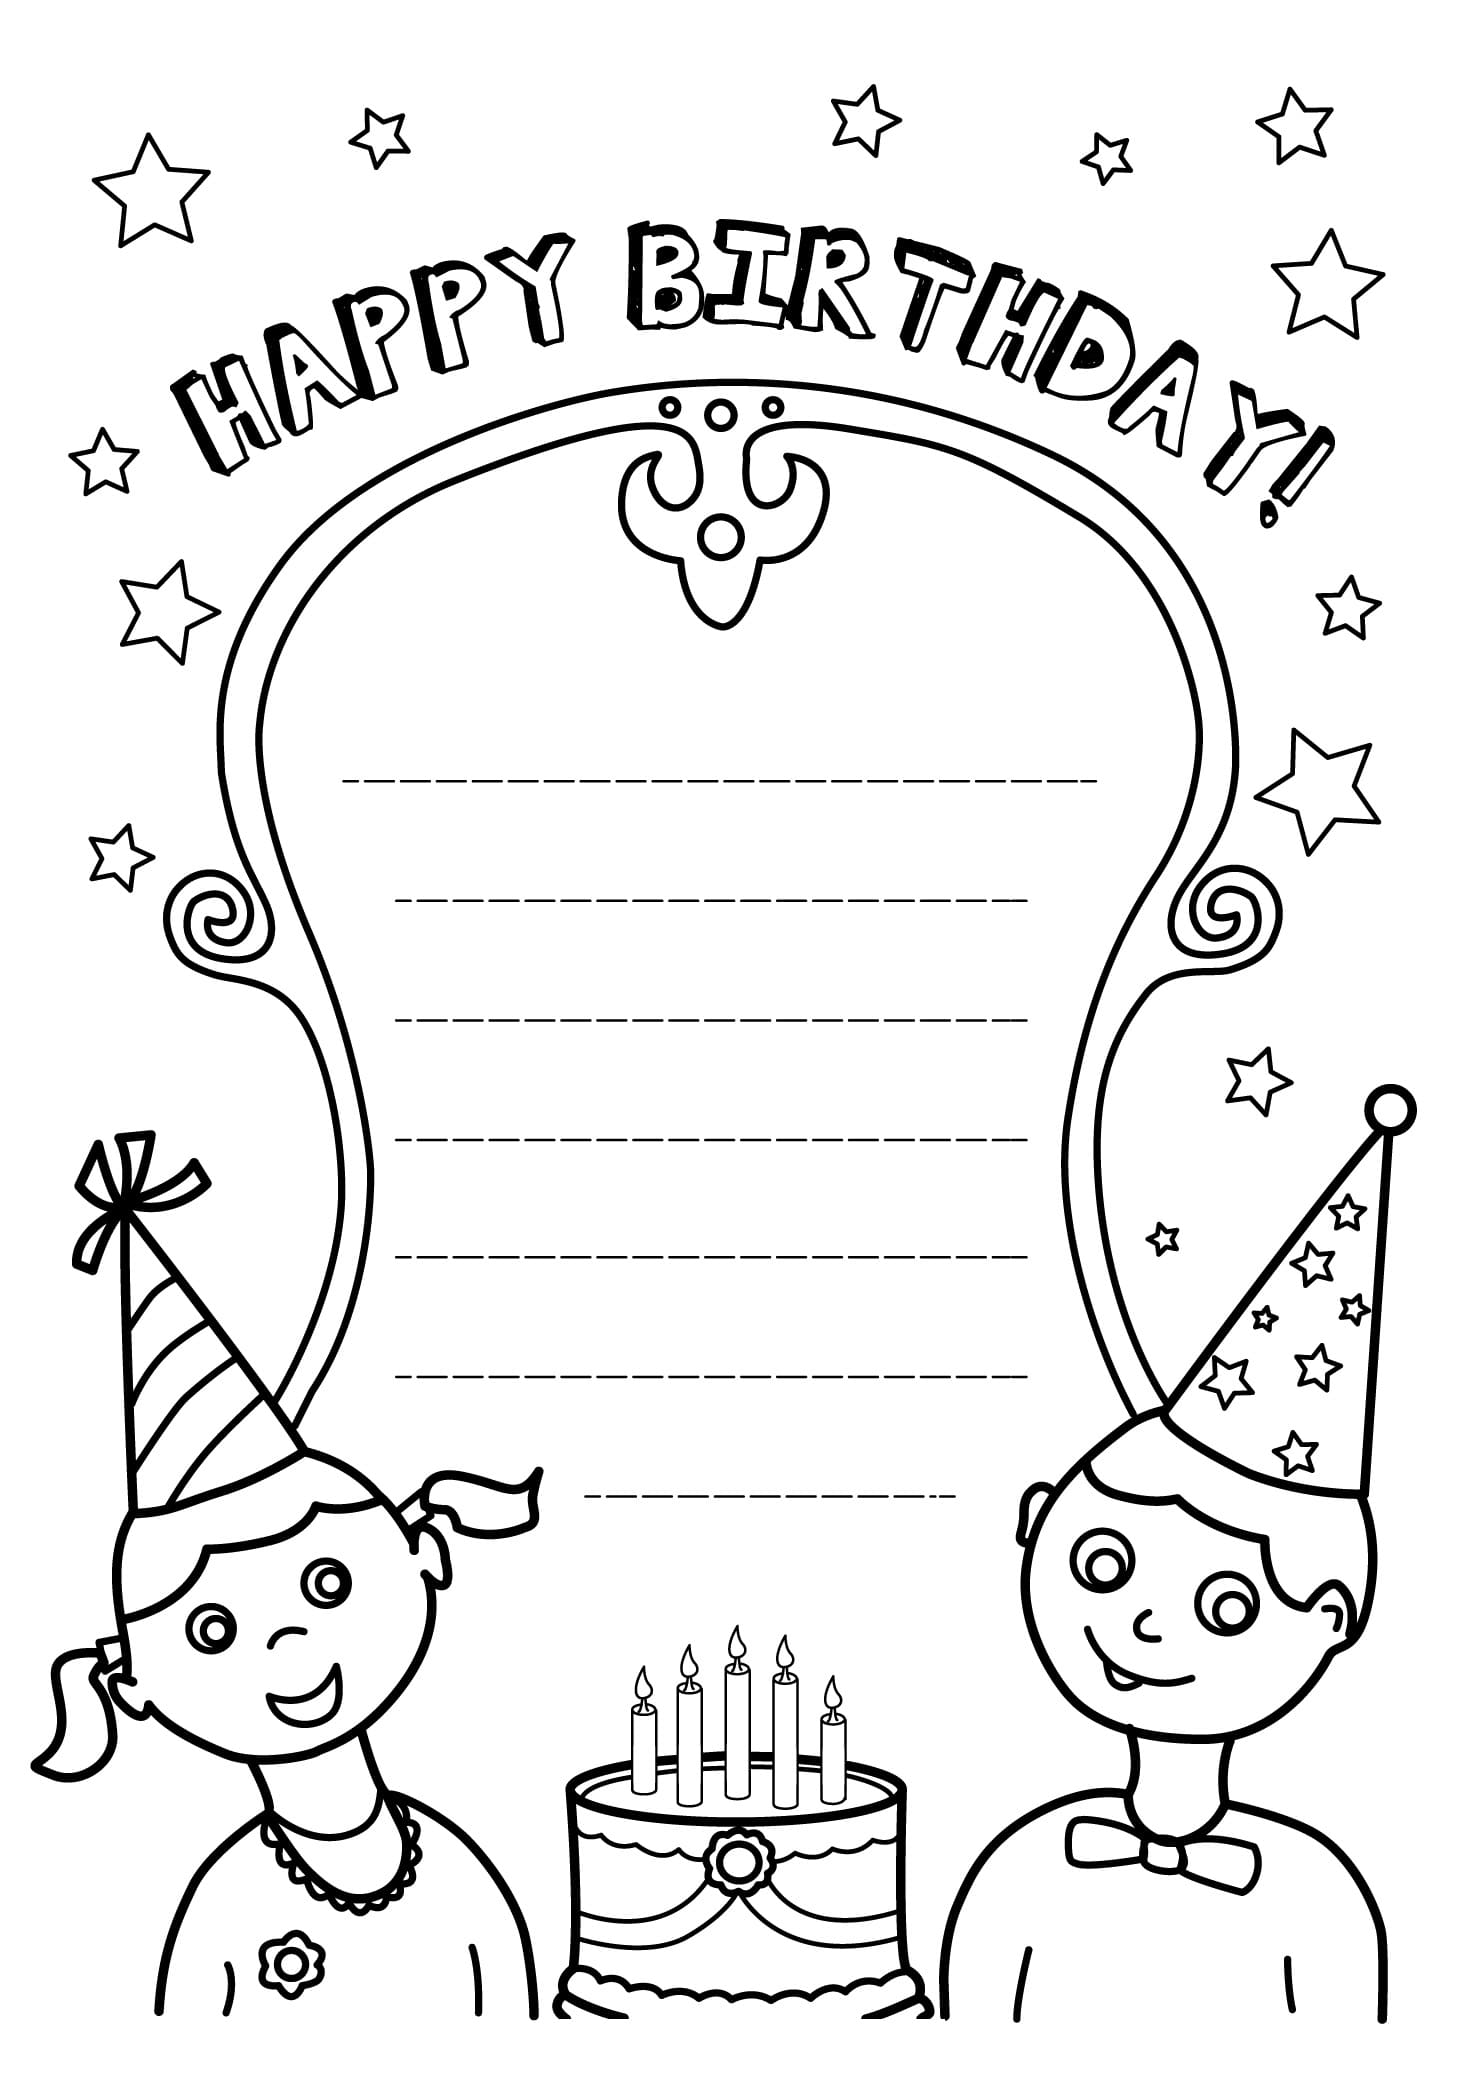 Coloring pages Happy Birthday.Big collection. Print postcards